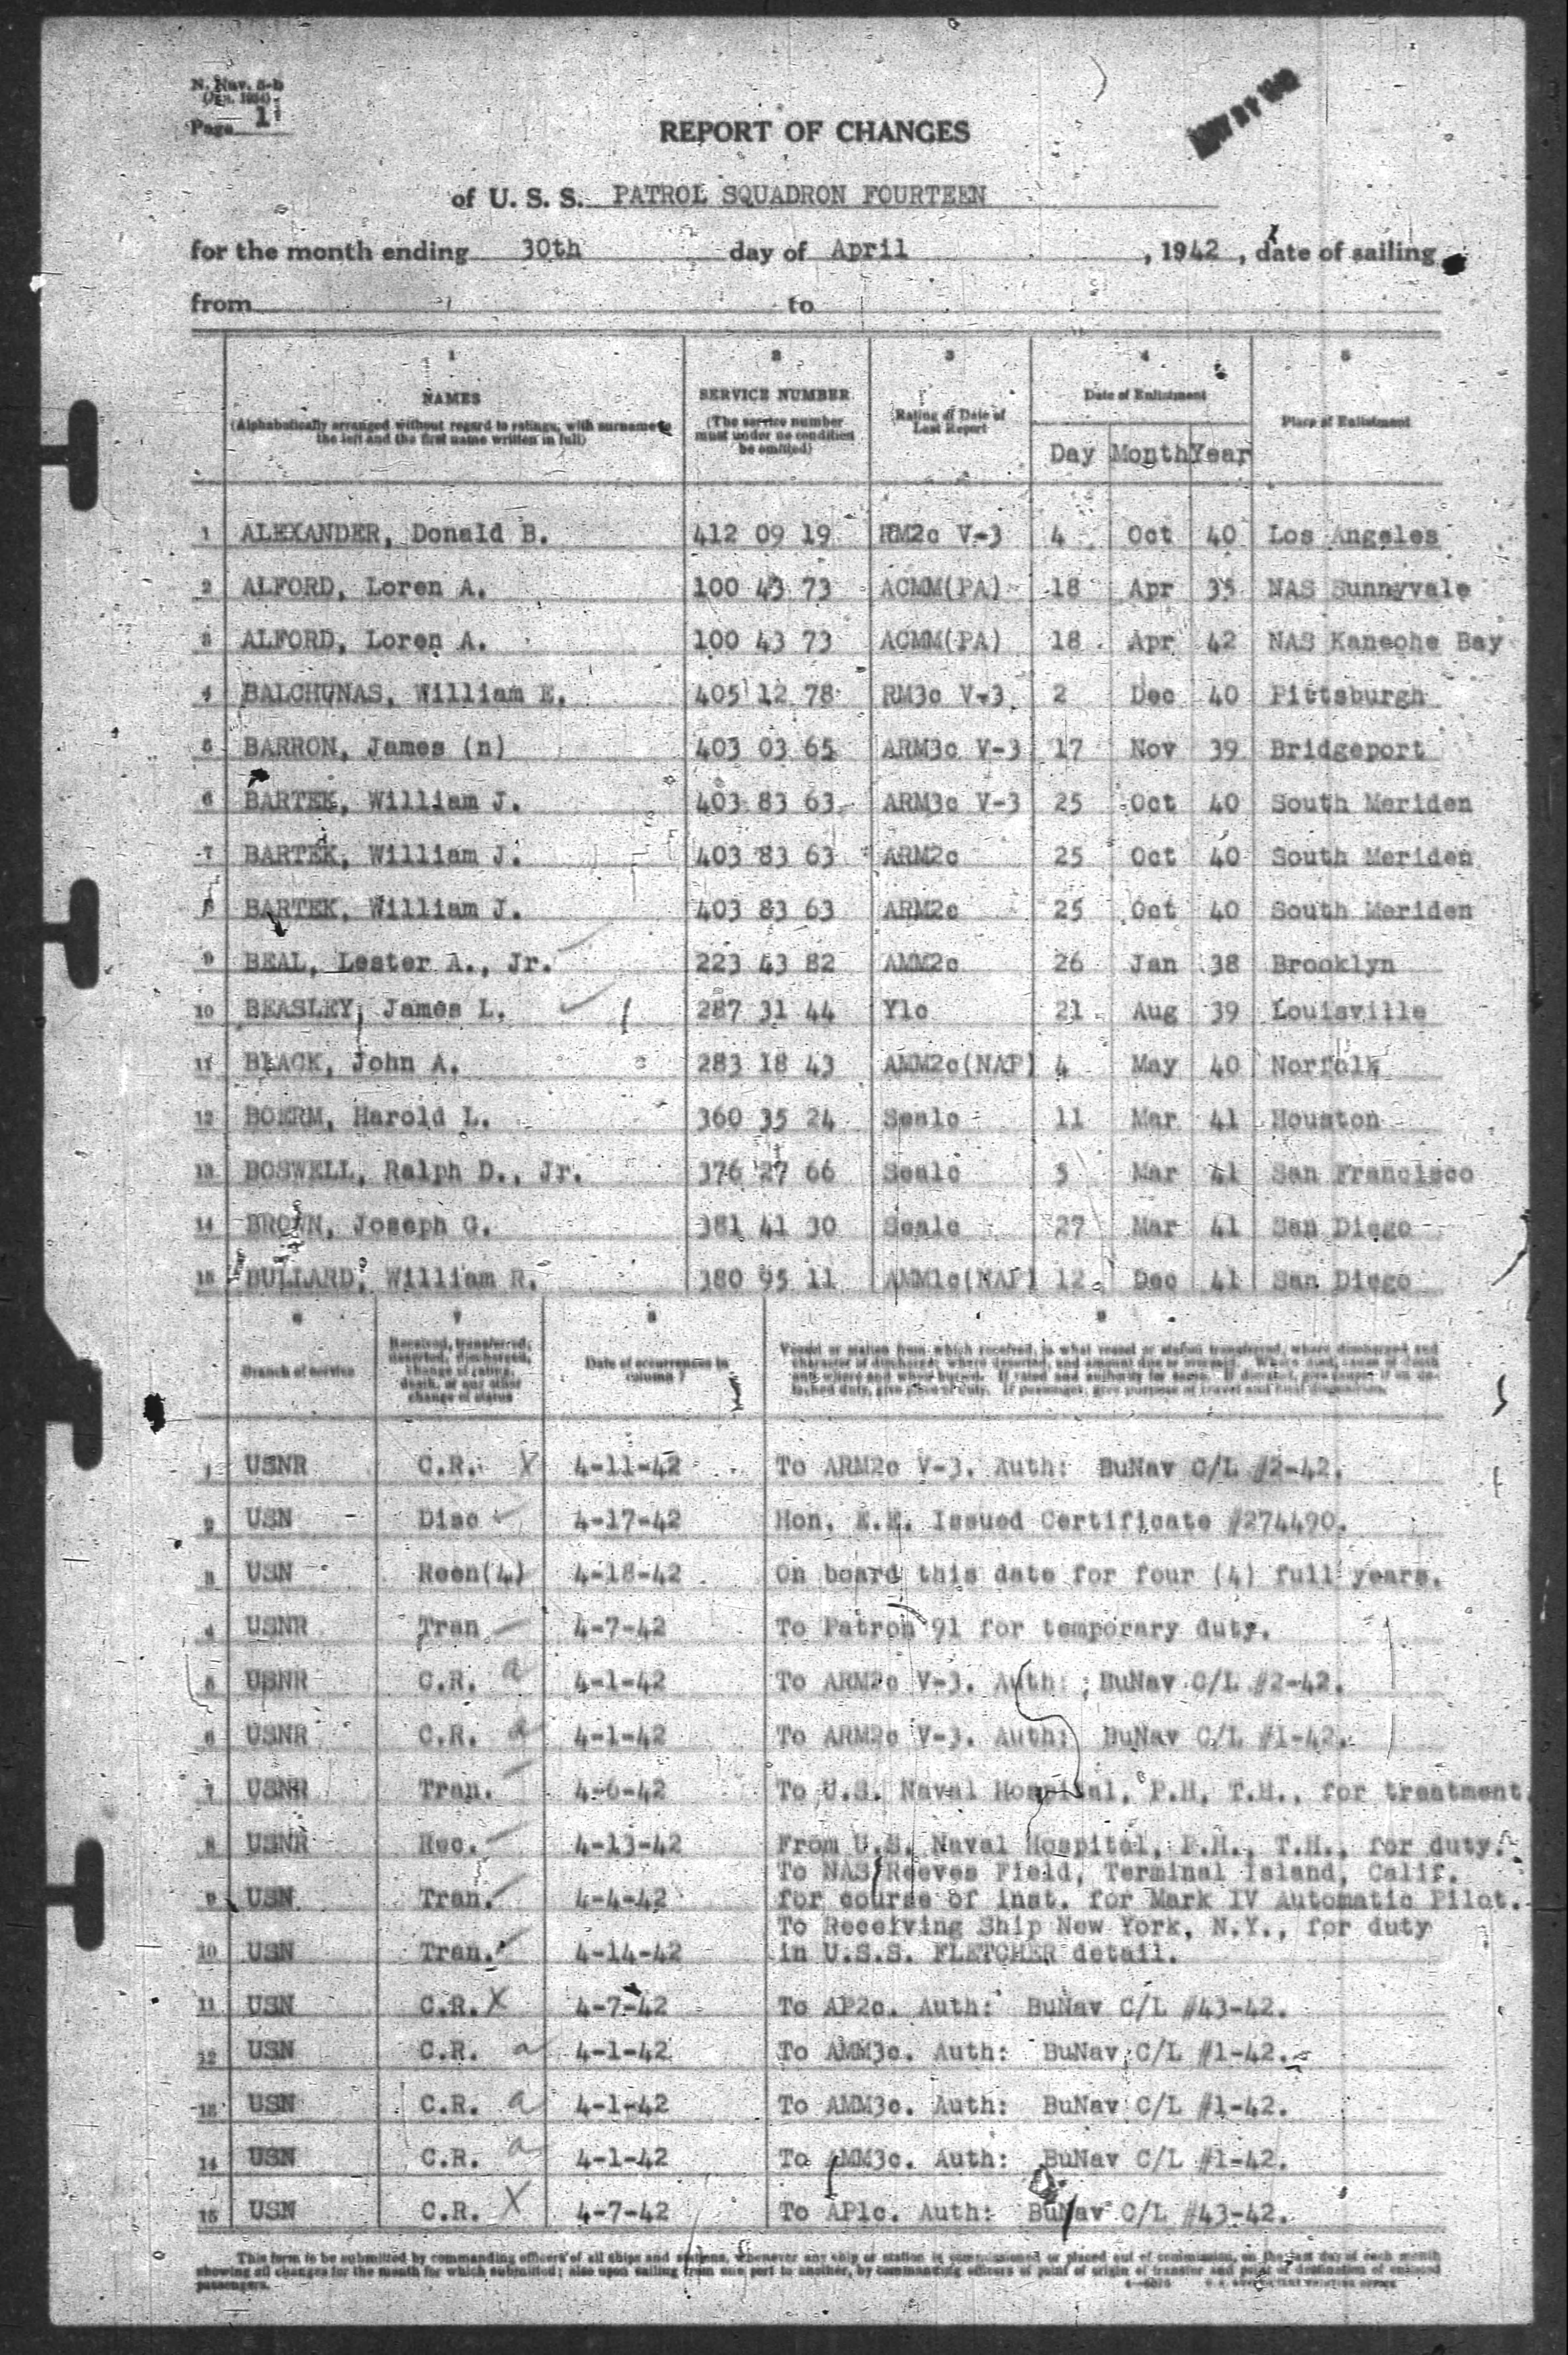 Squadron - VP-14 ([Blank]-[Blank]) - Report of Changes, April 1942